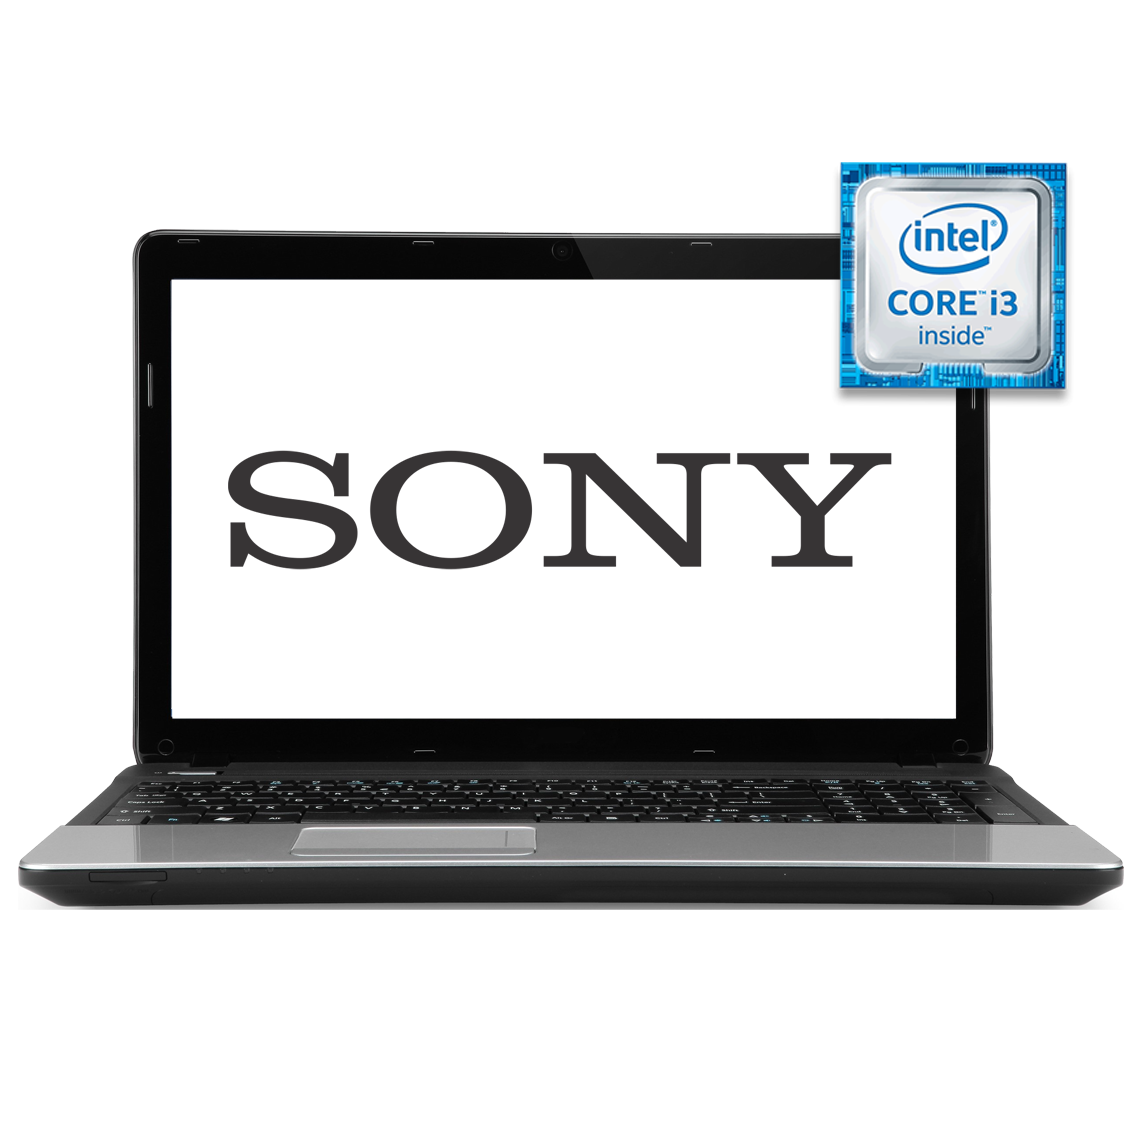 Sony - 15.6 inch Core i3 4th Gen